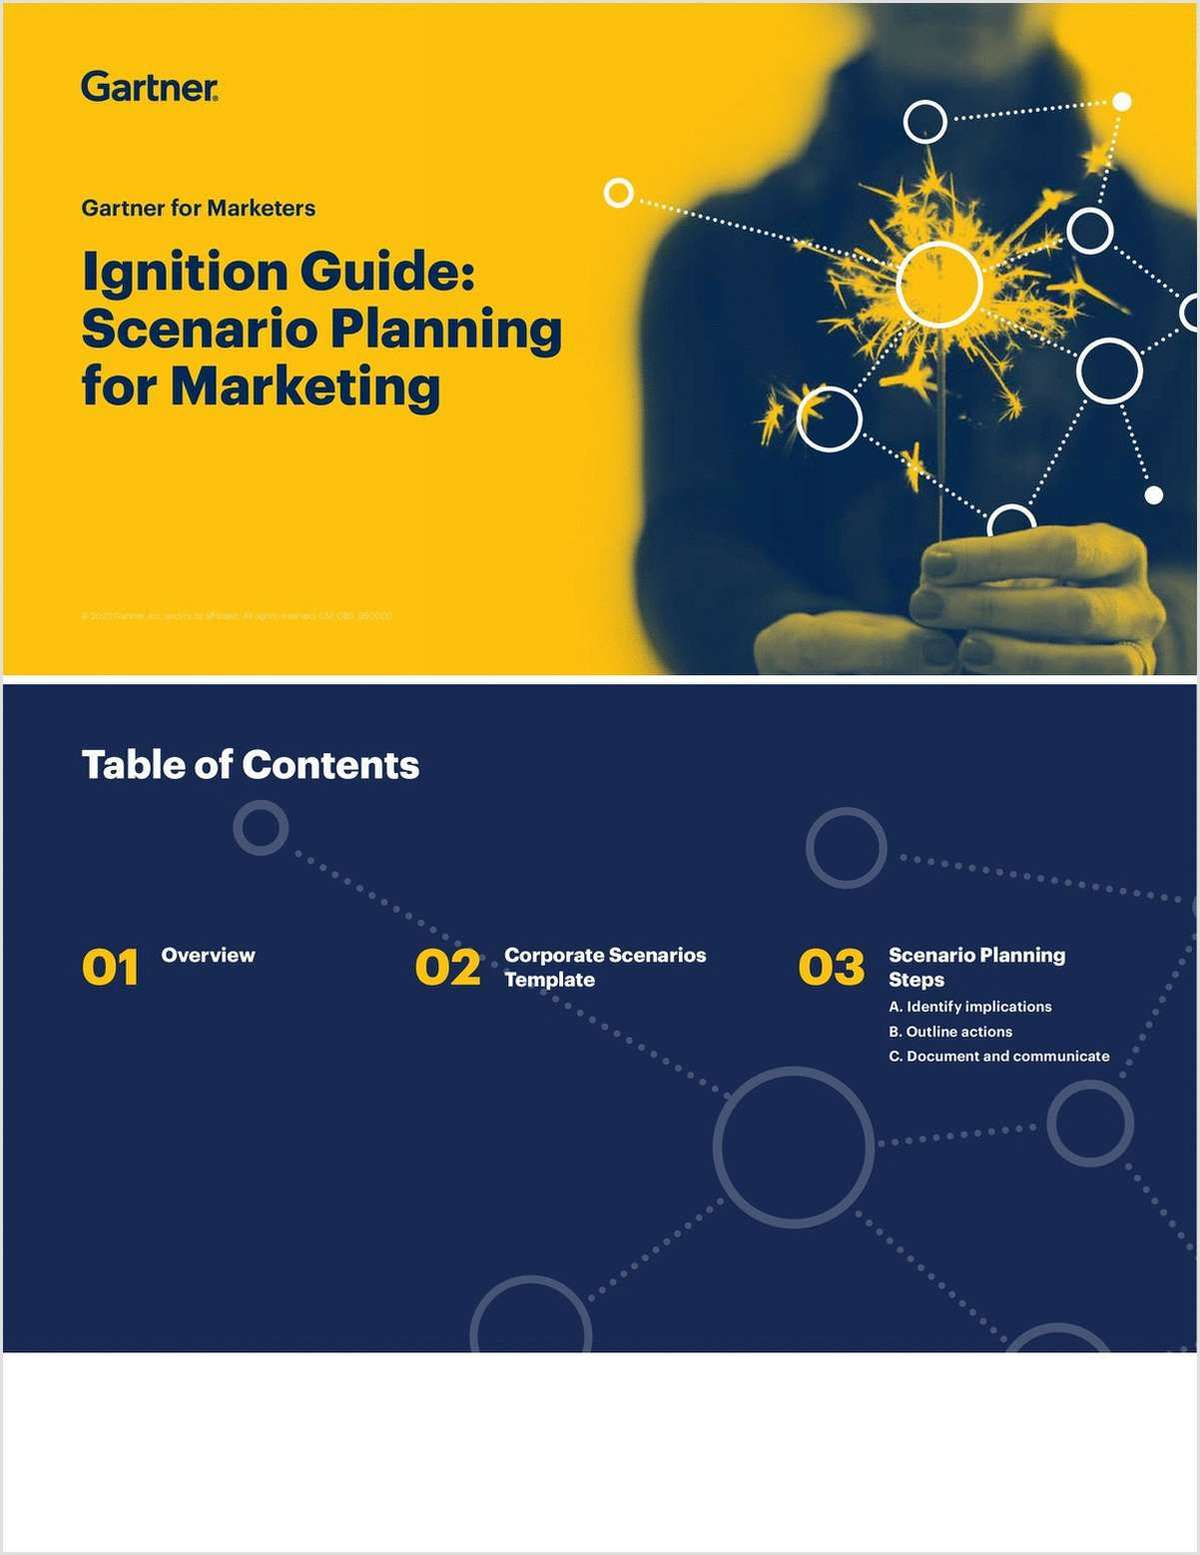 Ignition Guide: Scenario Planning for Marketing